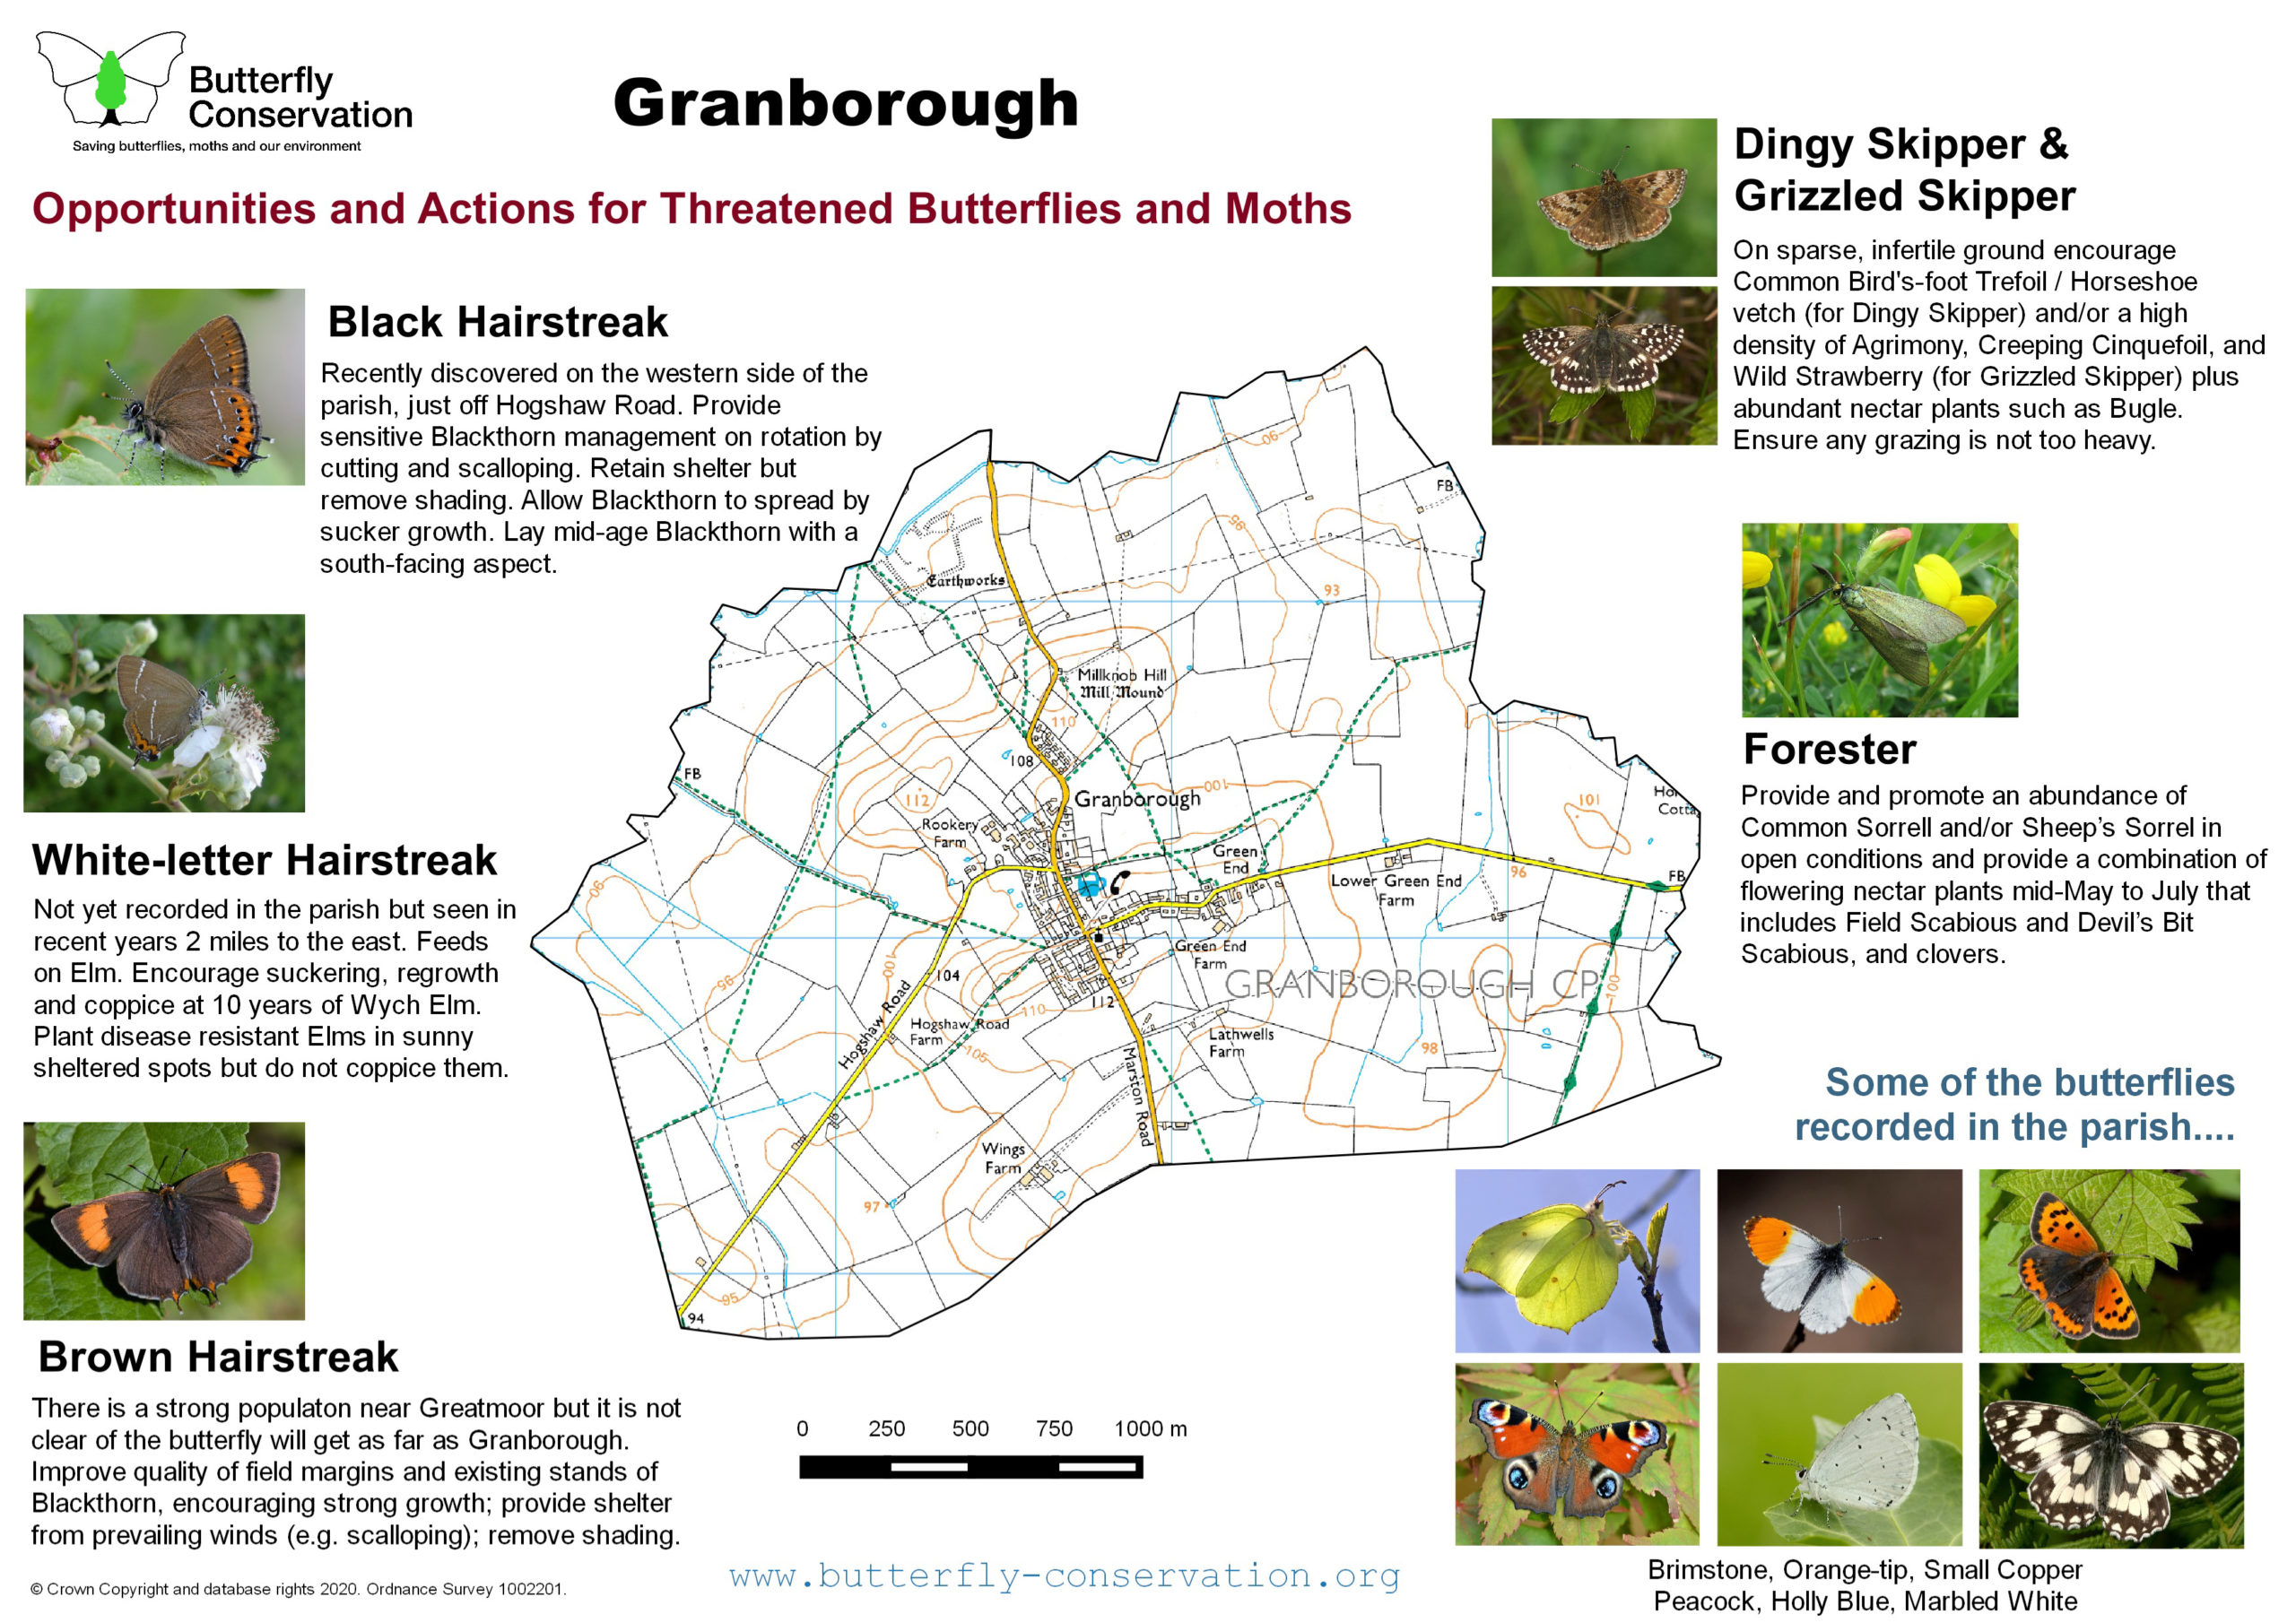 Summary Granborough Parish Opportunities And Actions For Priority Butterflies And Moths